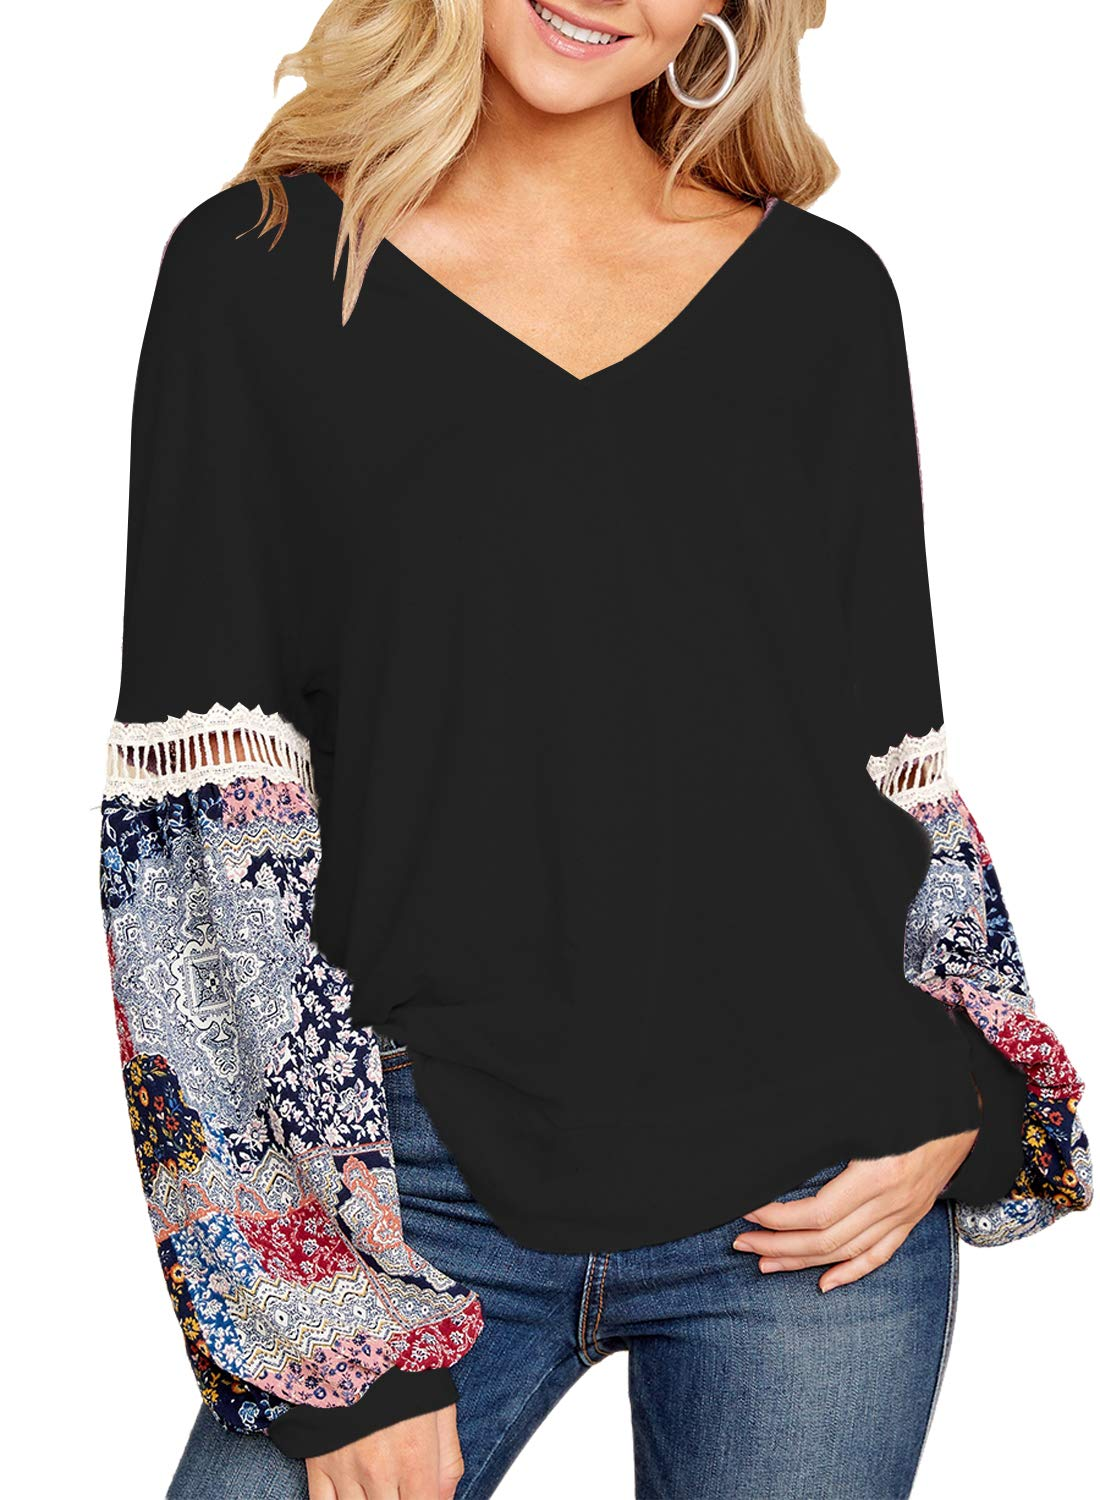 FARYSAYS Women's Autumn V Neck Long Sleeve Floral Patchwork Loose Fit T-Shirts Tops Blouse Black Medium by FARYSAYS (Image #1)